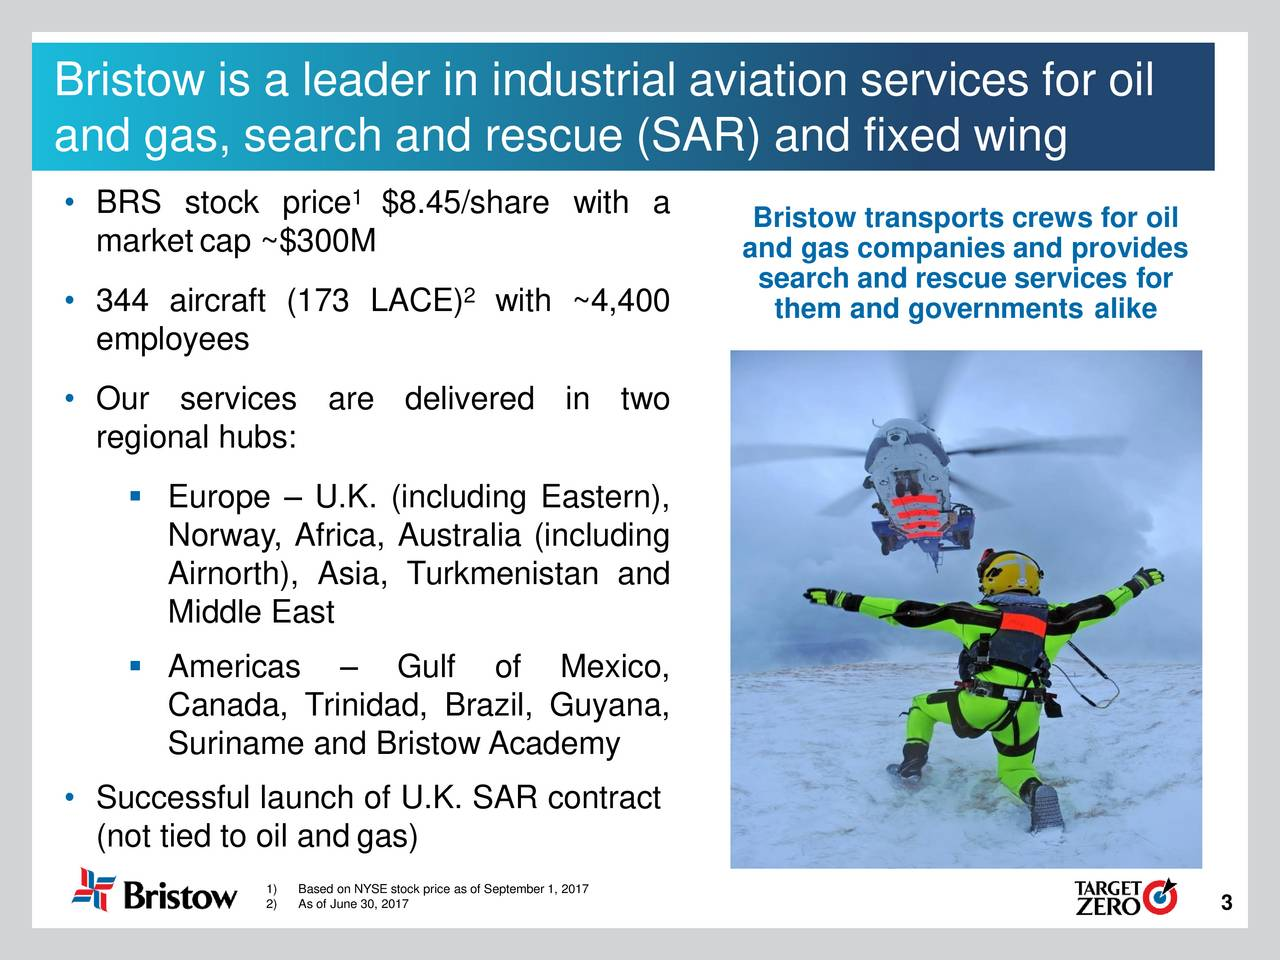 Bristow Group Brs Presents At Barclays Ceo Energy Power